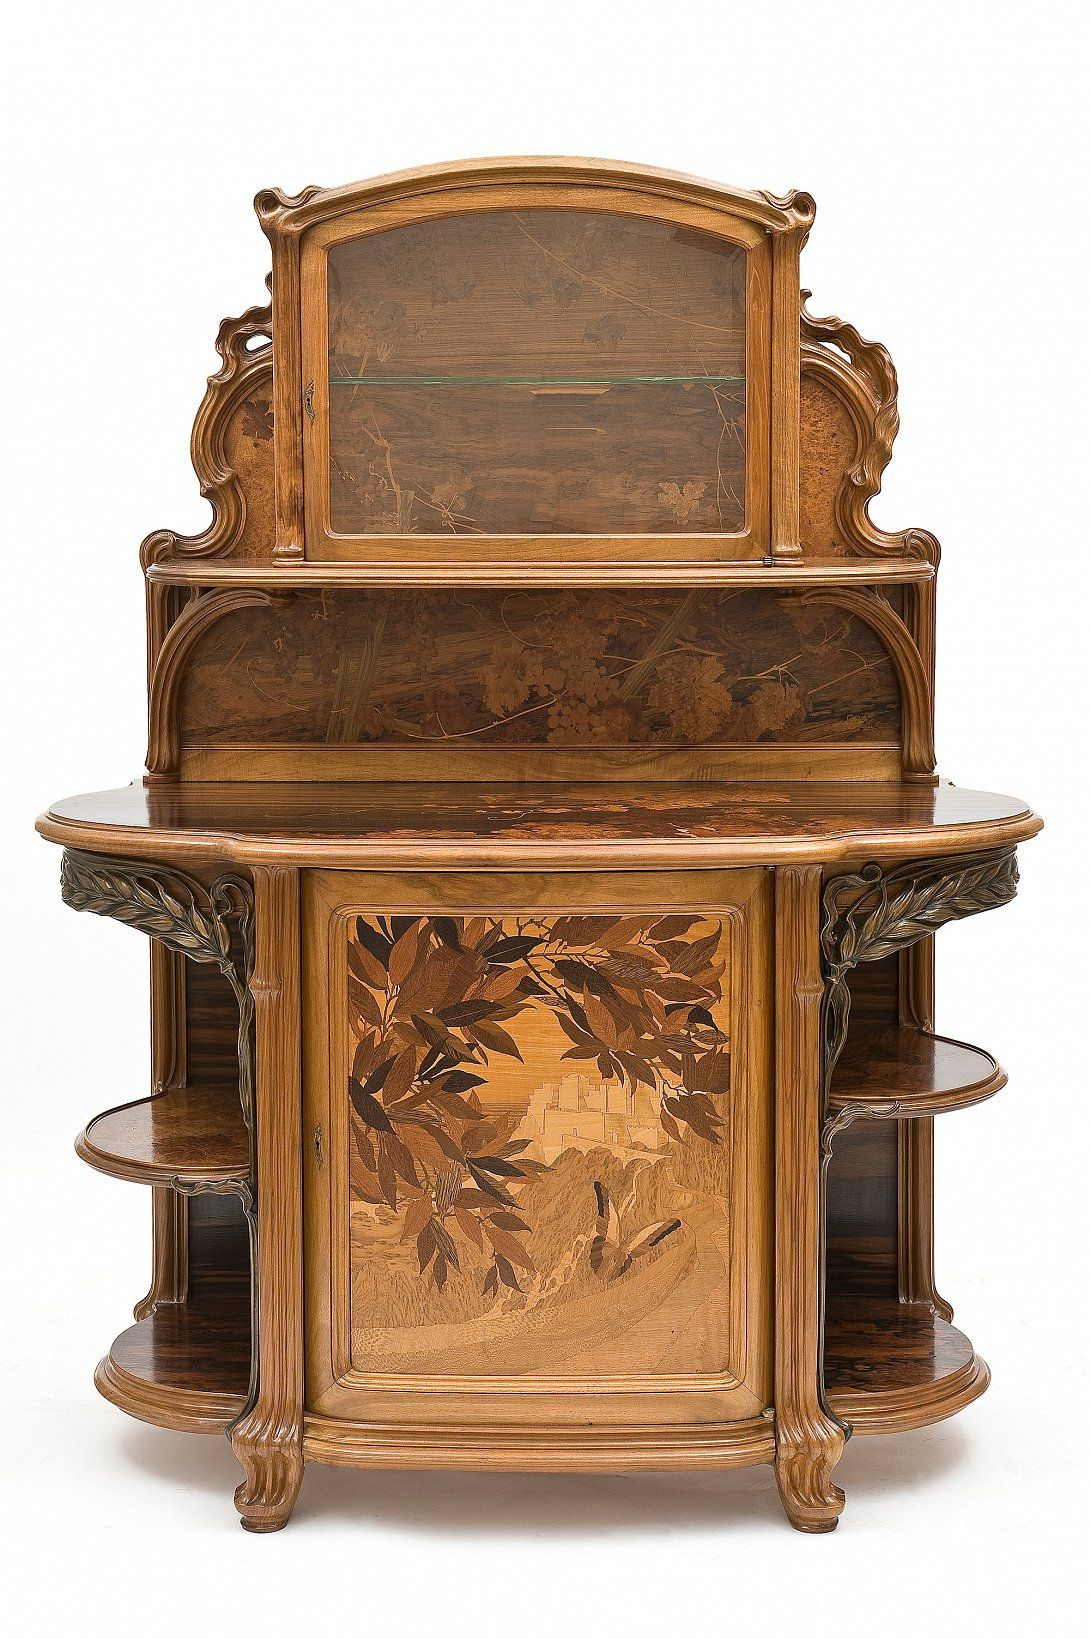 art nouveau harvest walnut buffet with molded carved inlaid polychrome wood ormolu. Black Bedroom Furniture Sets. Home Design Ideas